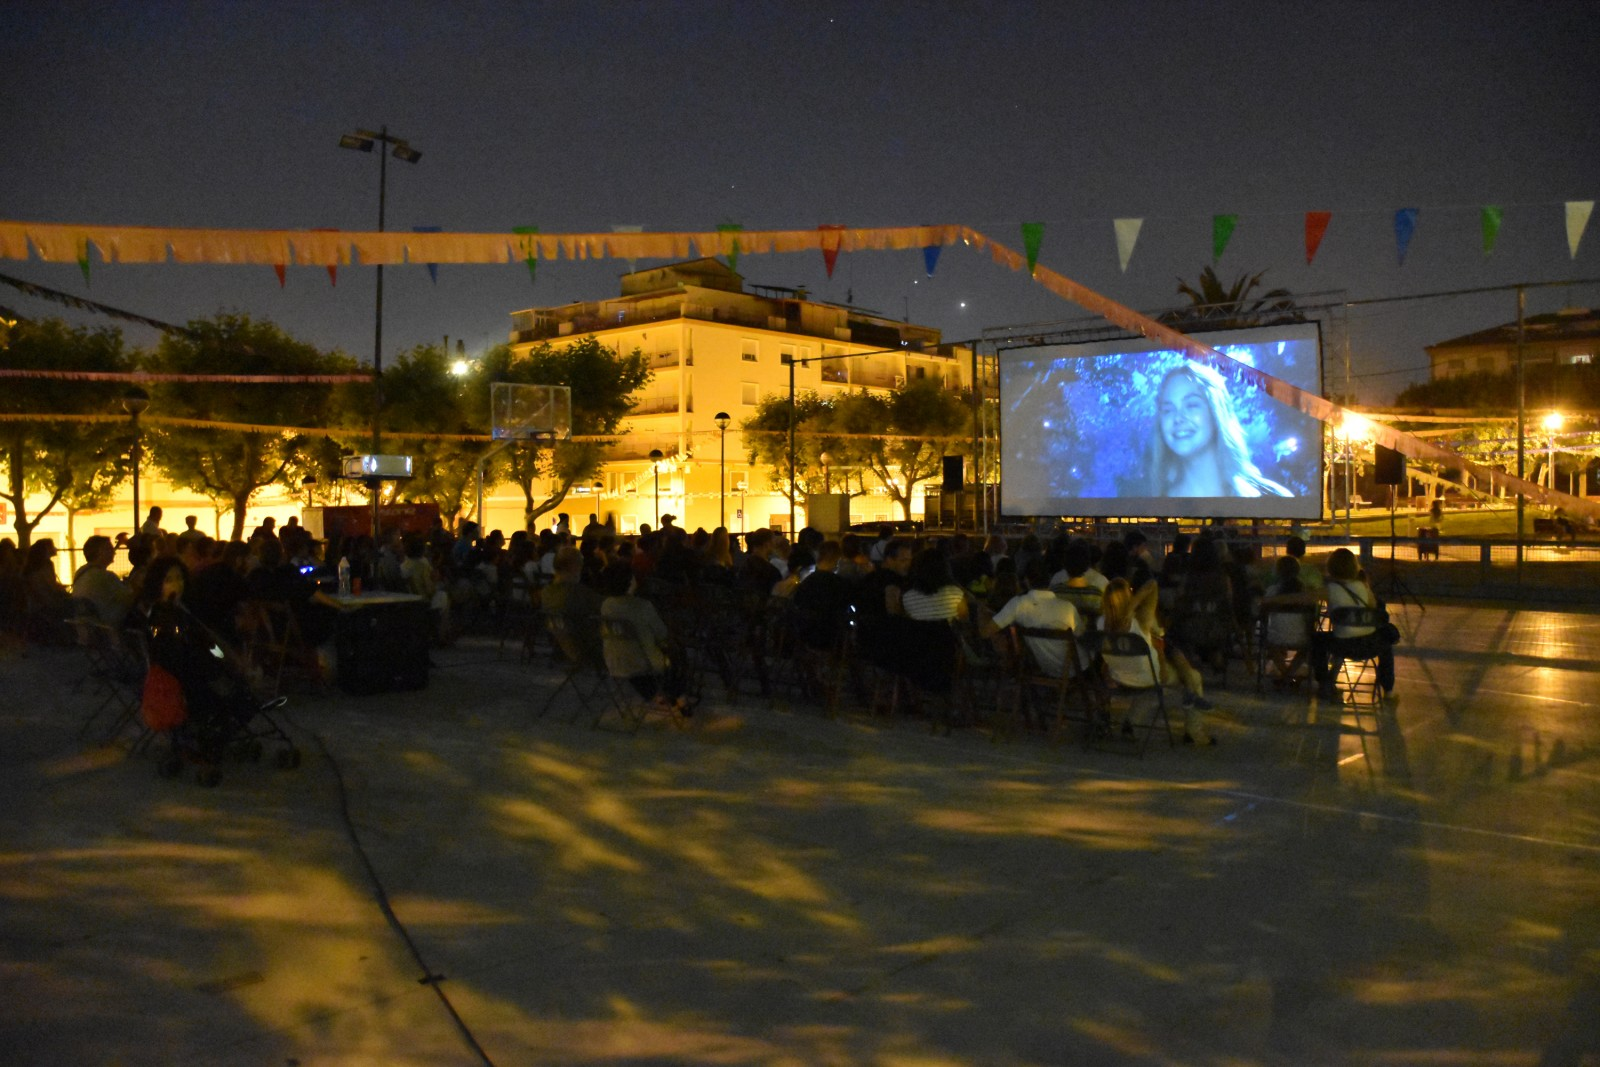 Cycle de cinéma en plein air. Photo : Jordi López Guevara (Tot Olesa Imatges)